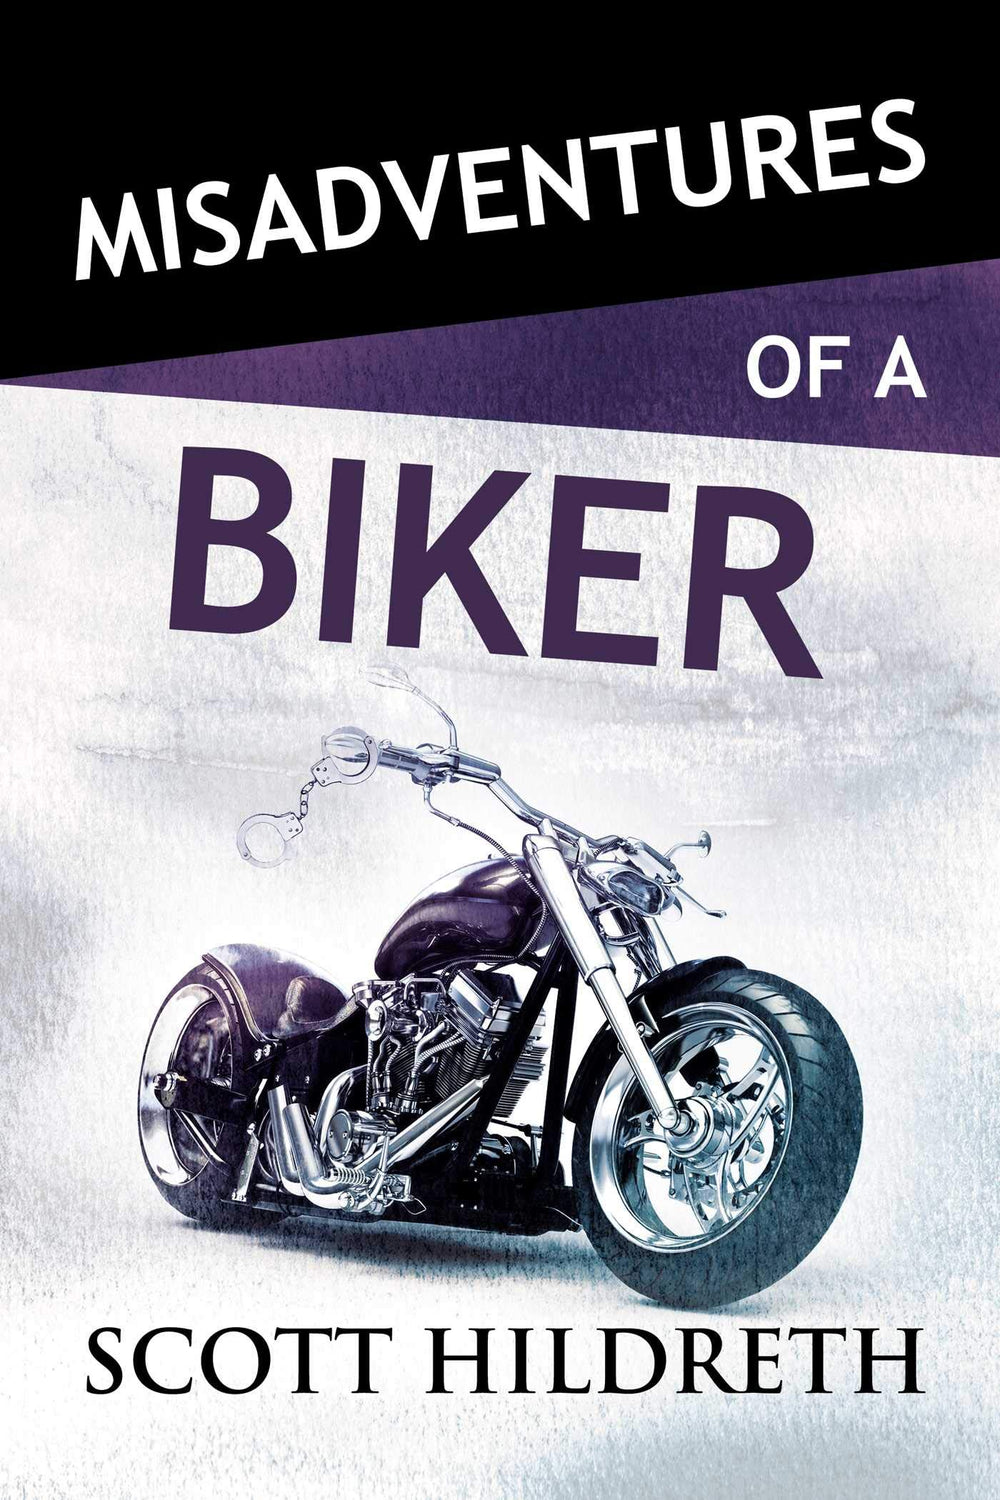 Misadventures of a Biker by Scott HiIldreth